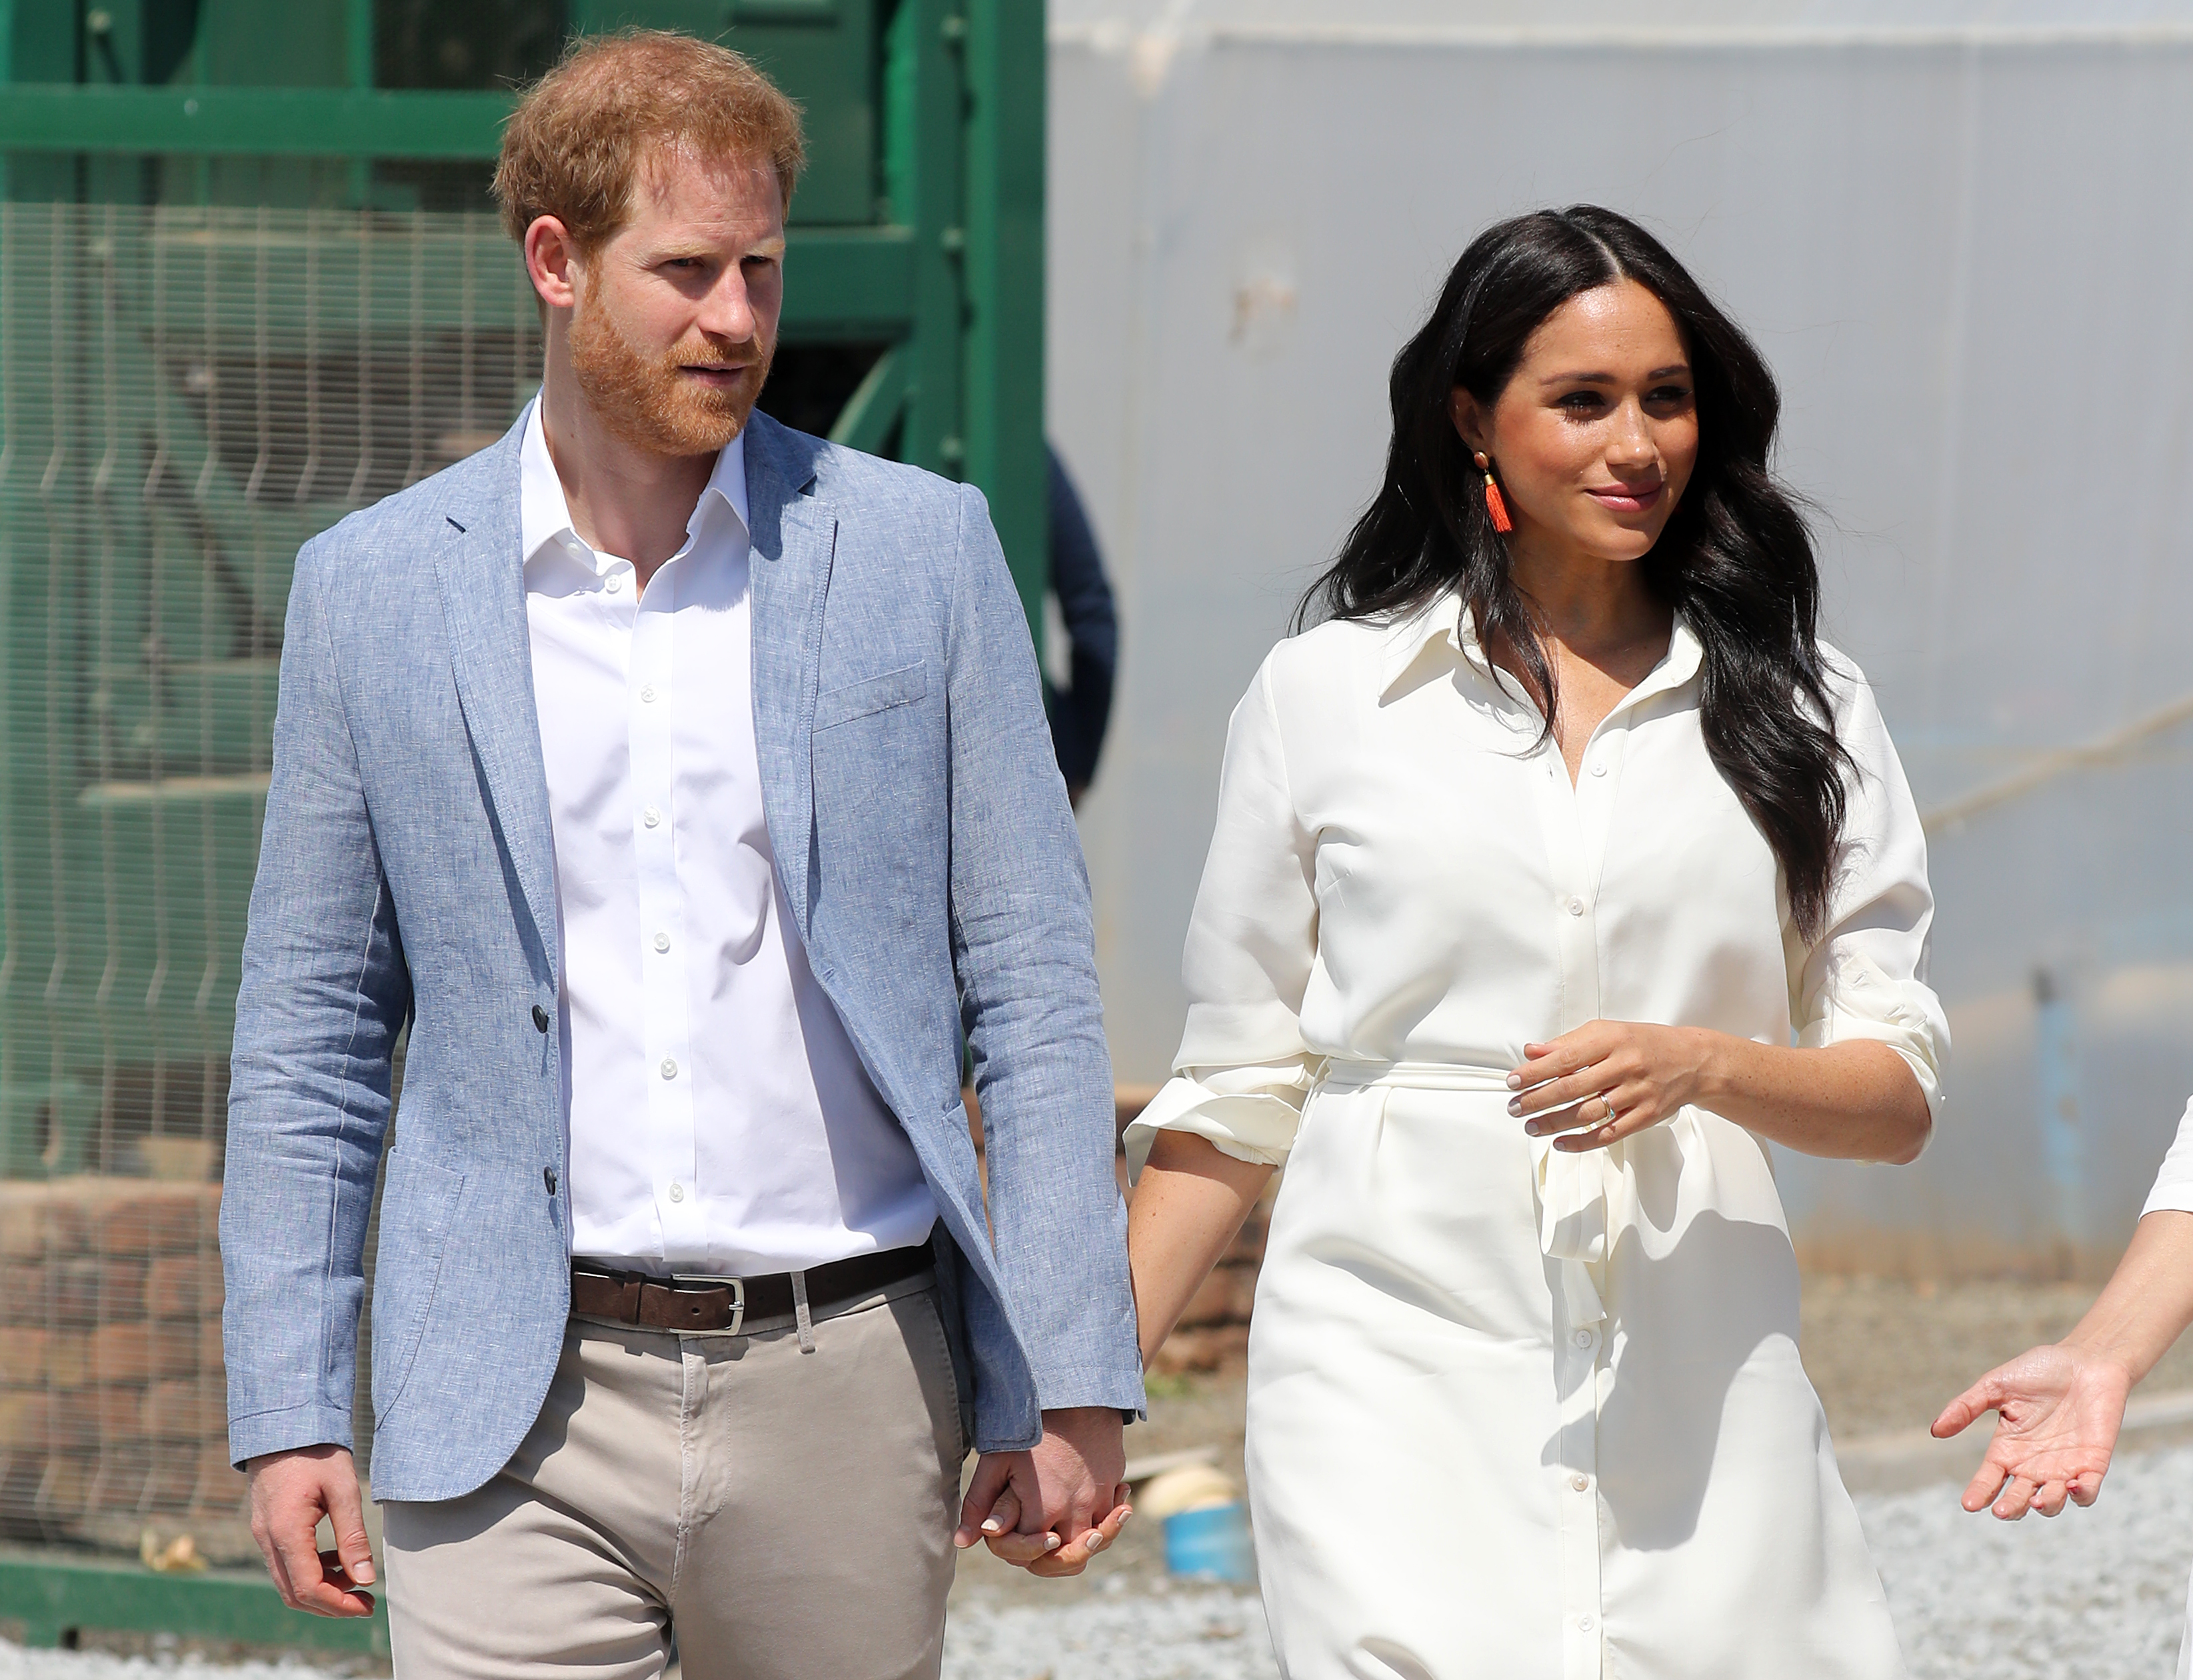 Meghan and Harry Have Moved to Los Angeles to Start Their New Life as Non-Senior Royals